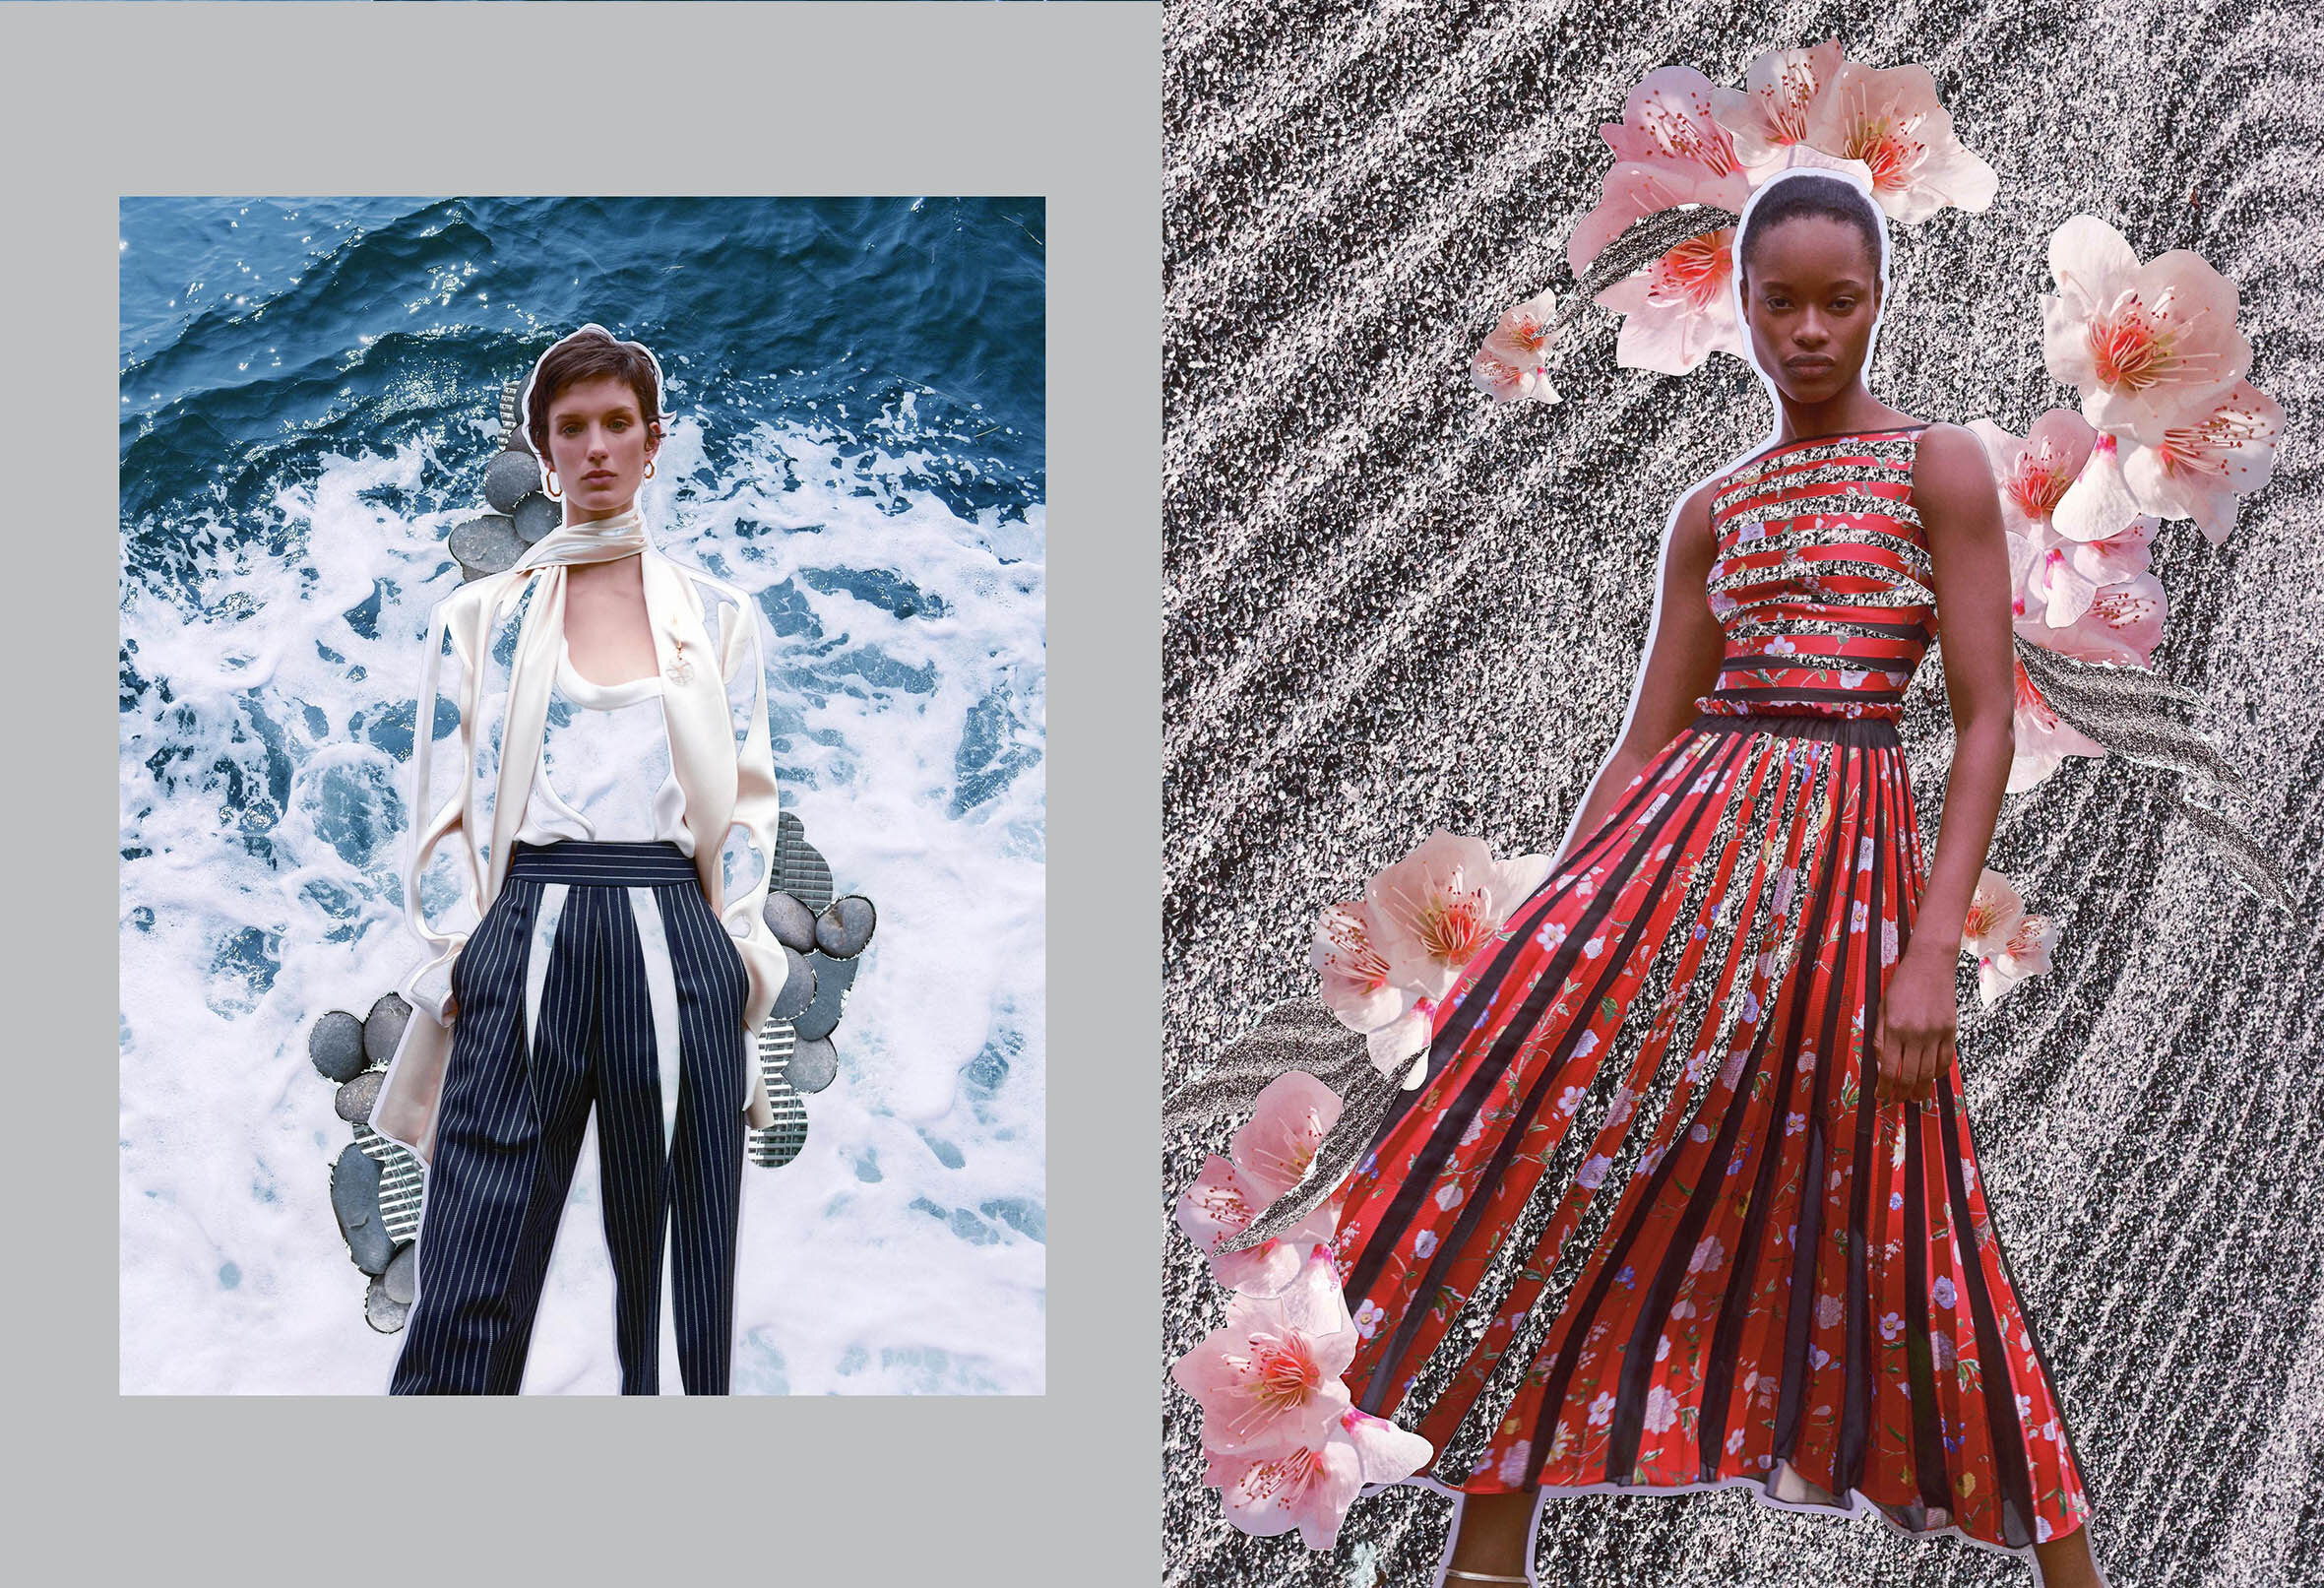 Fashion's Digital Artists Are Today's New Storytellers